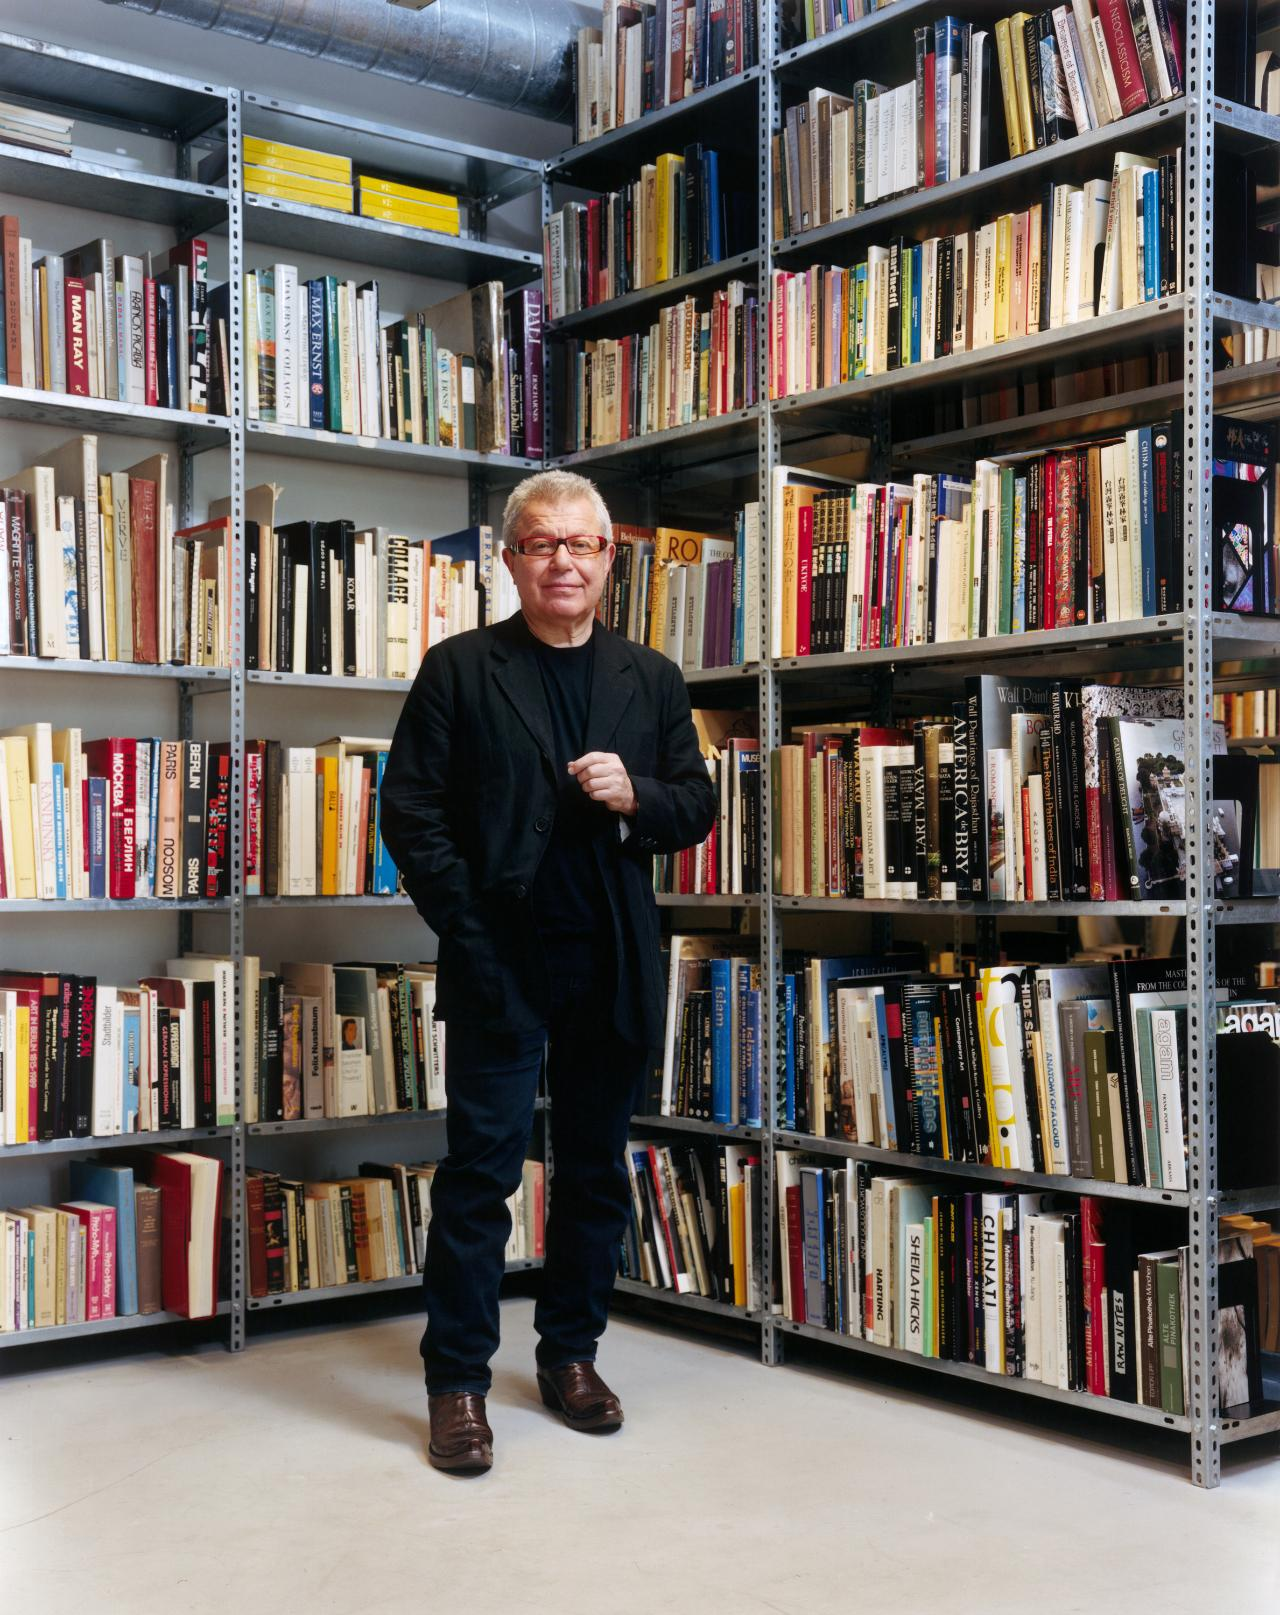 Libeskind in his studio in New York City, one block away from Ground Zero — and the project that catapulted him into the public spotlight.